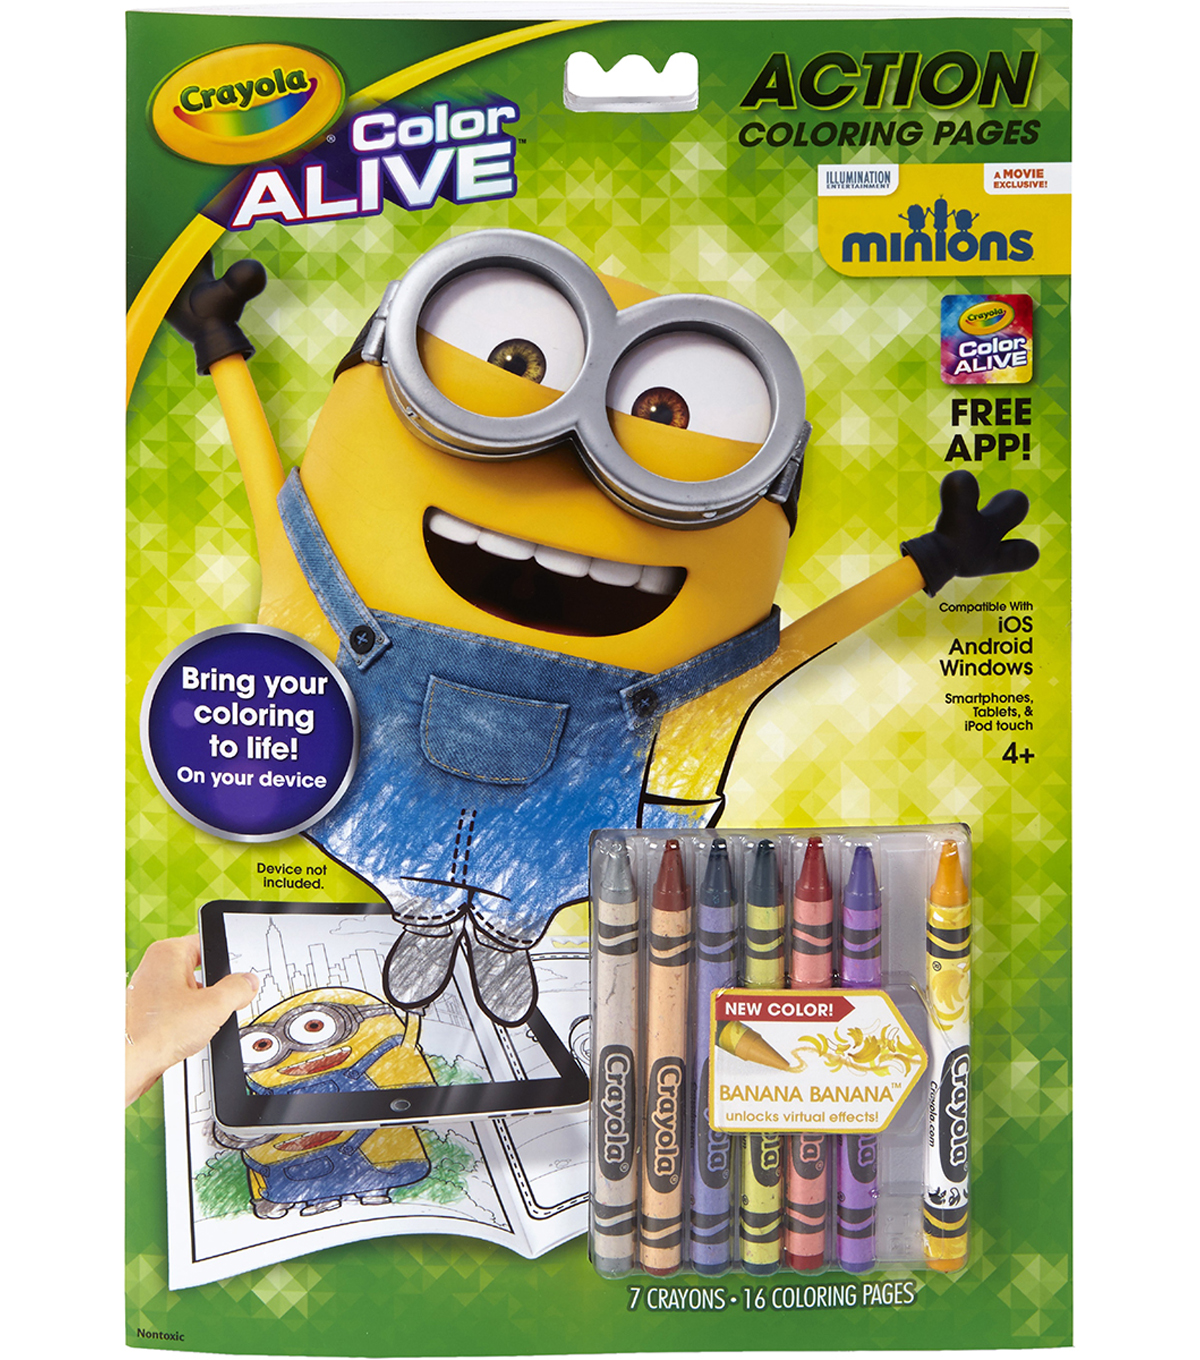 Crayola Color Alive Action Coloring Pages-Minions   JOANN